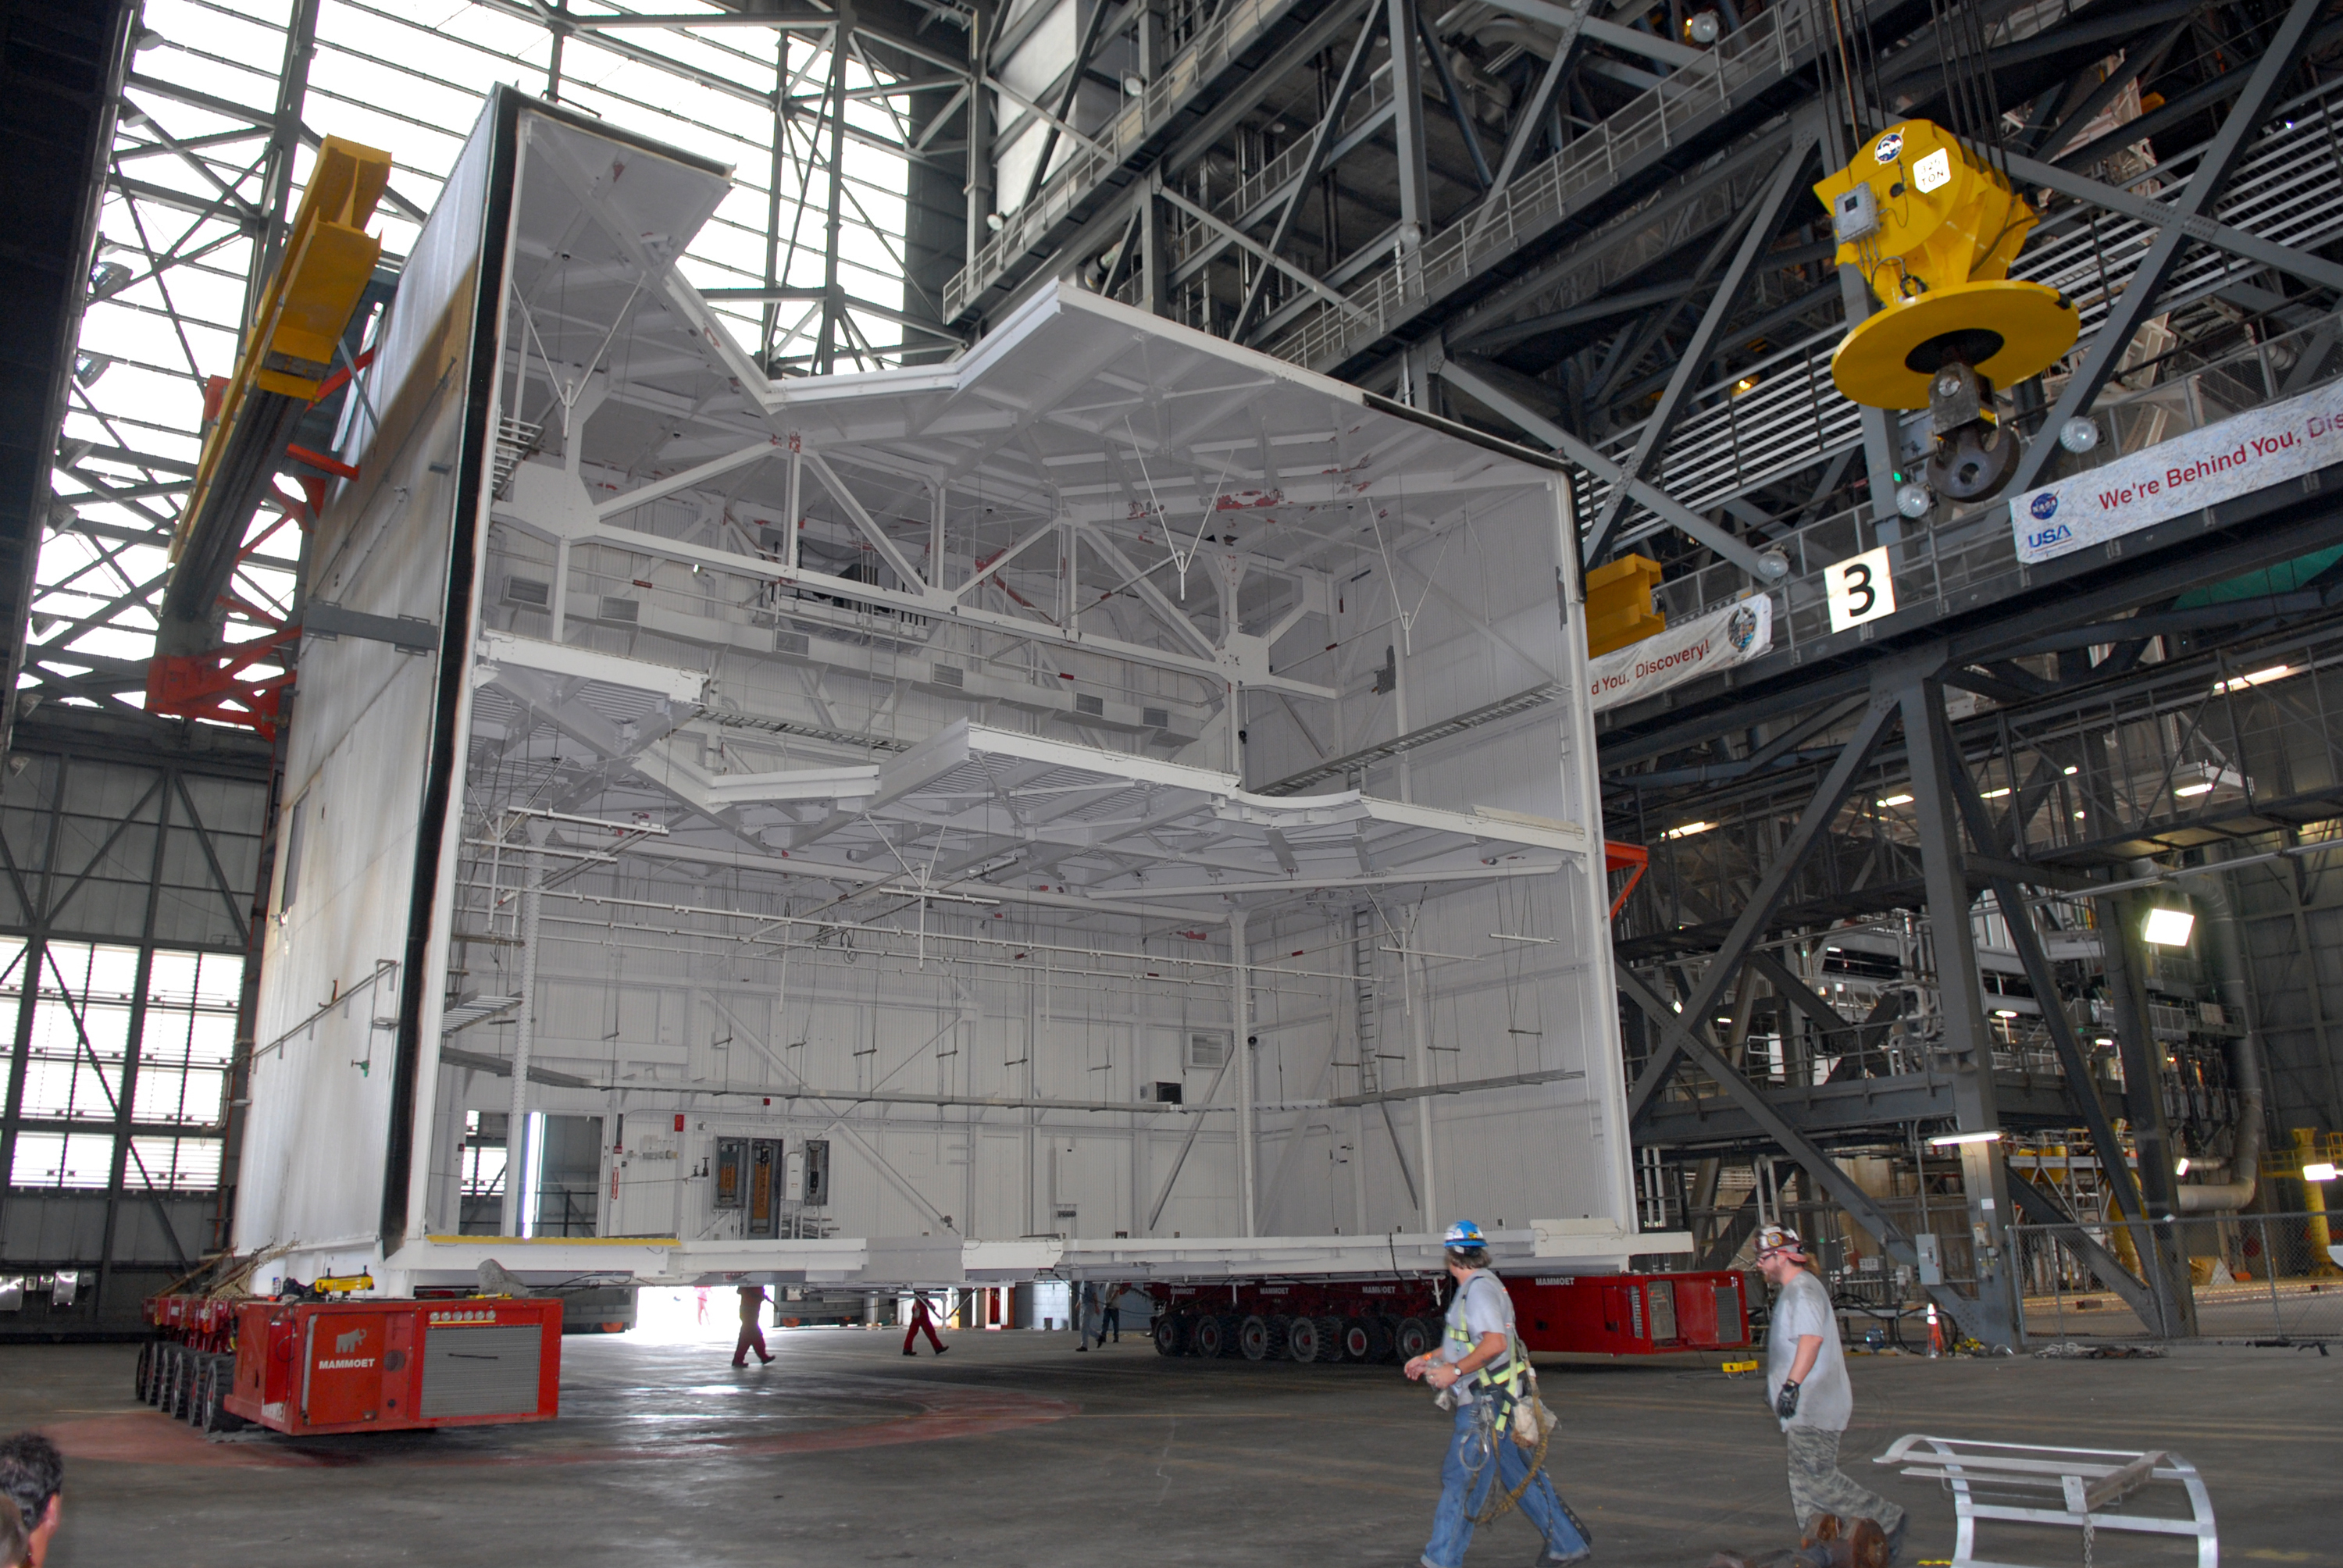 The refurbishment of the VAB will include removing seven Apollo-era platforms from high bay 3 and replacing them with modern versions that can be relocated and reconfigured for multiple launch vehicles.